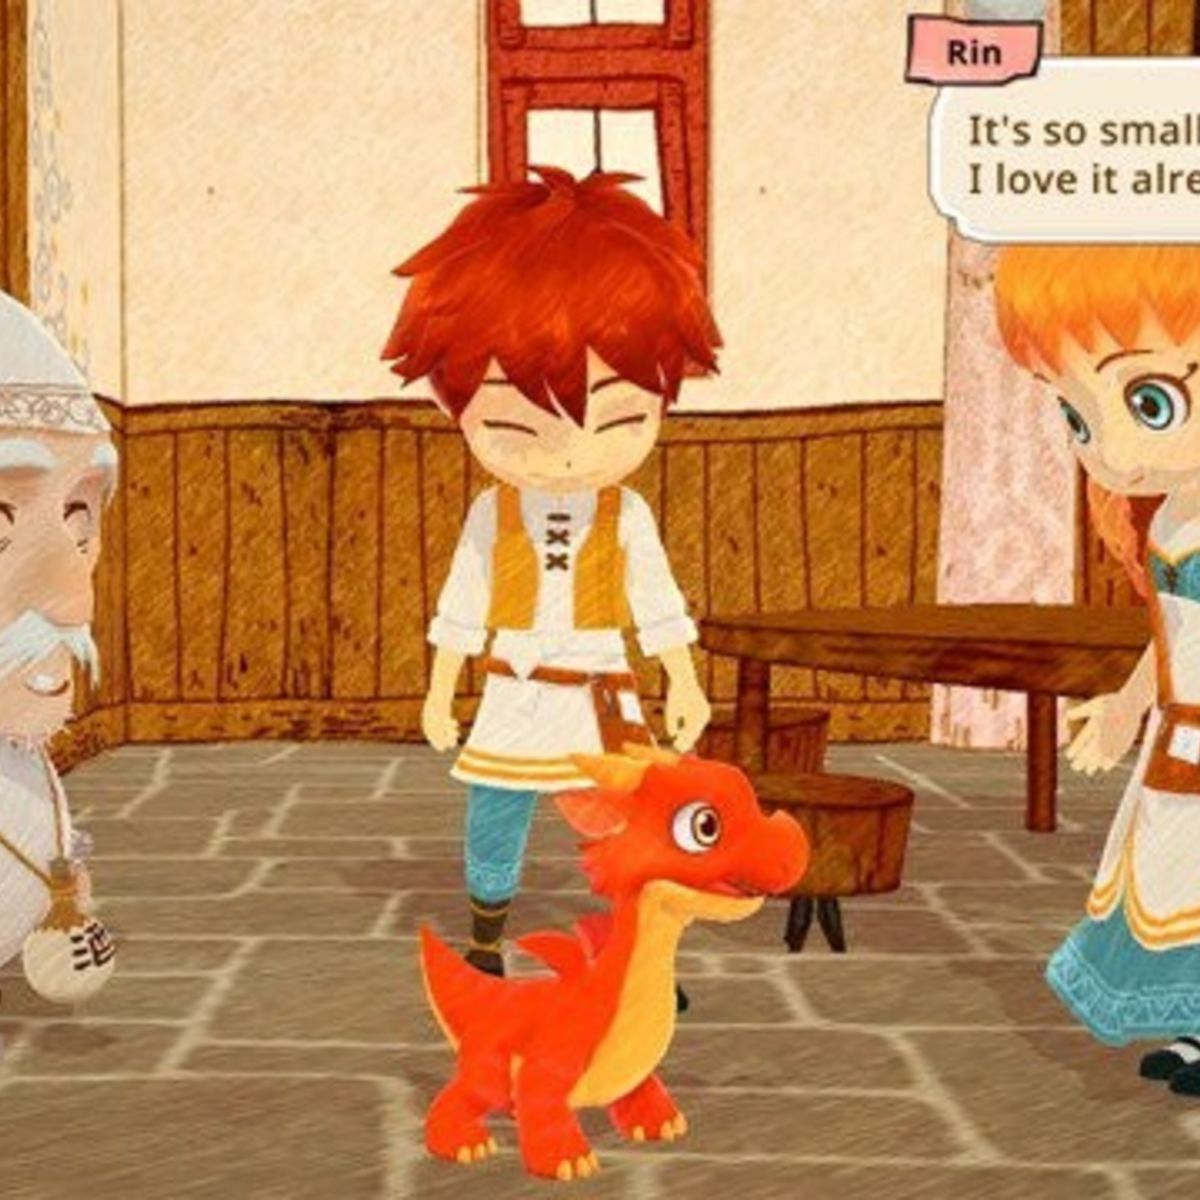 Little Dragons Cafe - First Screenshot